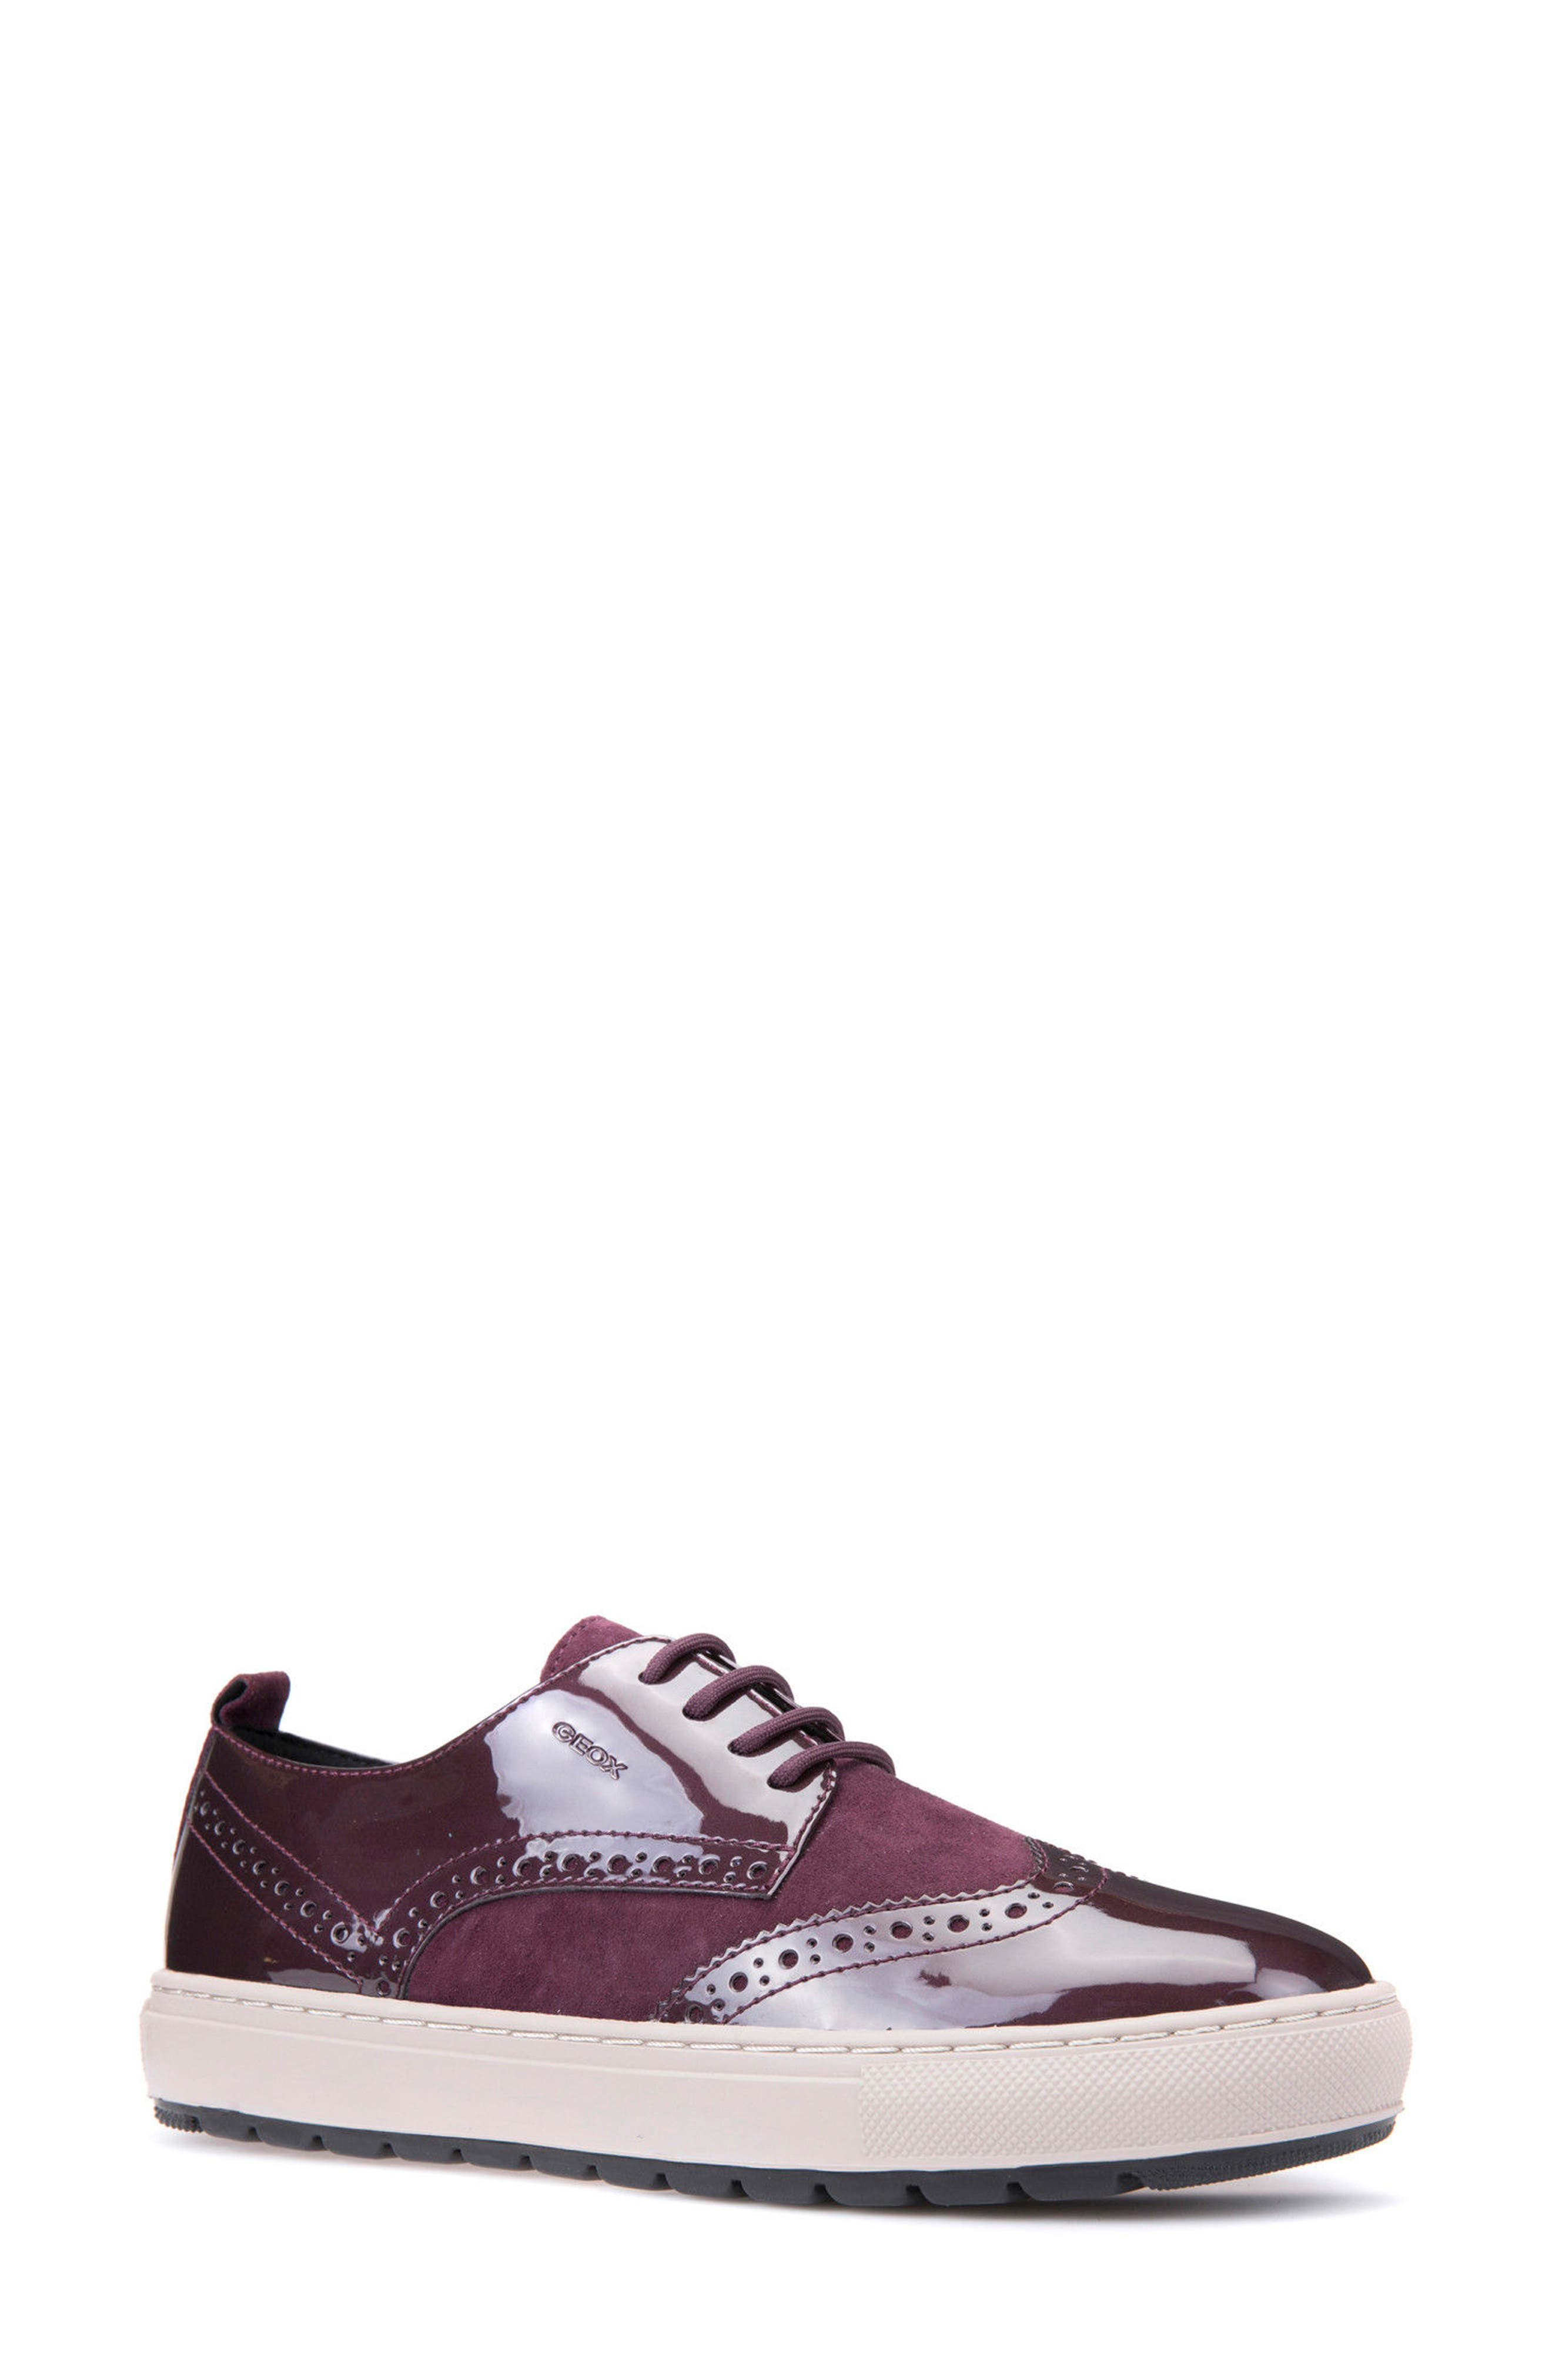 Main Image - Geox Breeda Oxford Sneaker (Women)